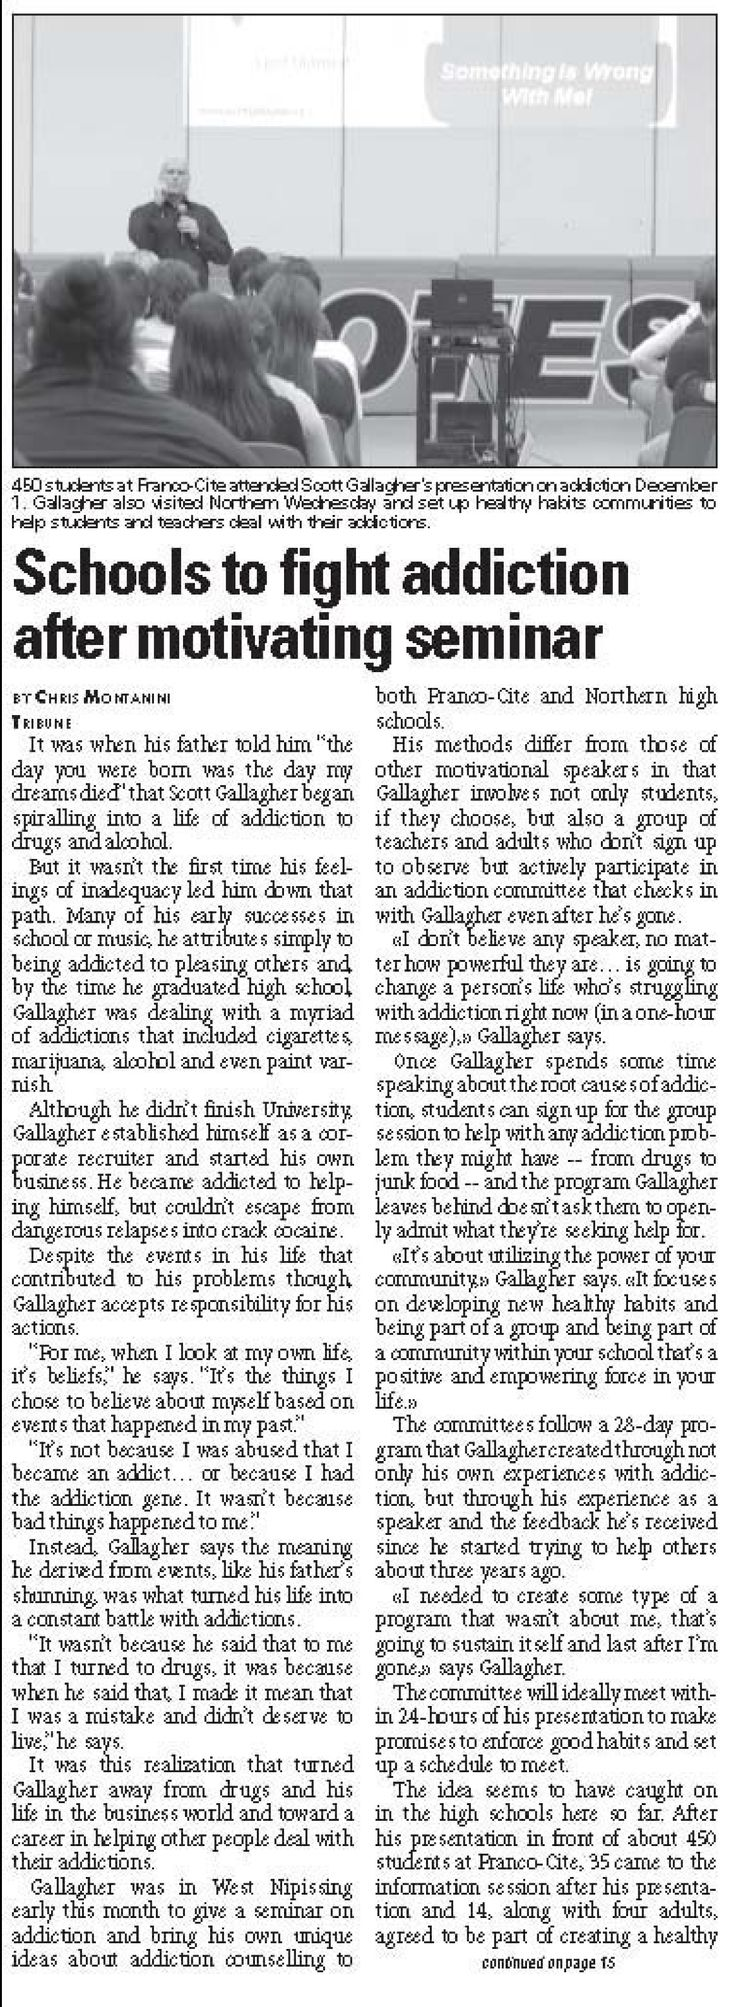 """Article on Scott Gallagher """"Schools to fight addictions after motivating seminar"""""""